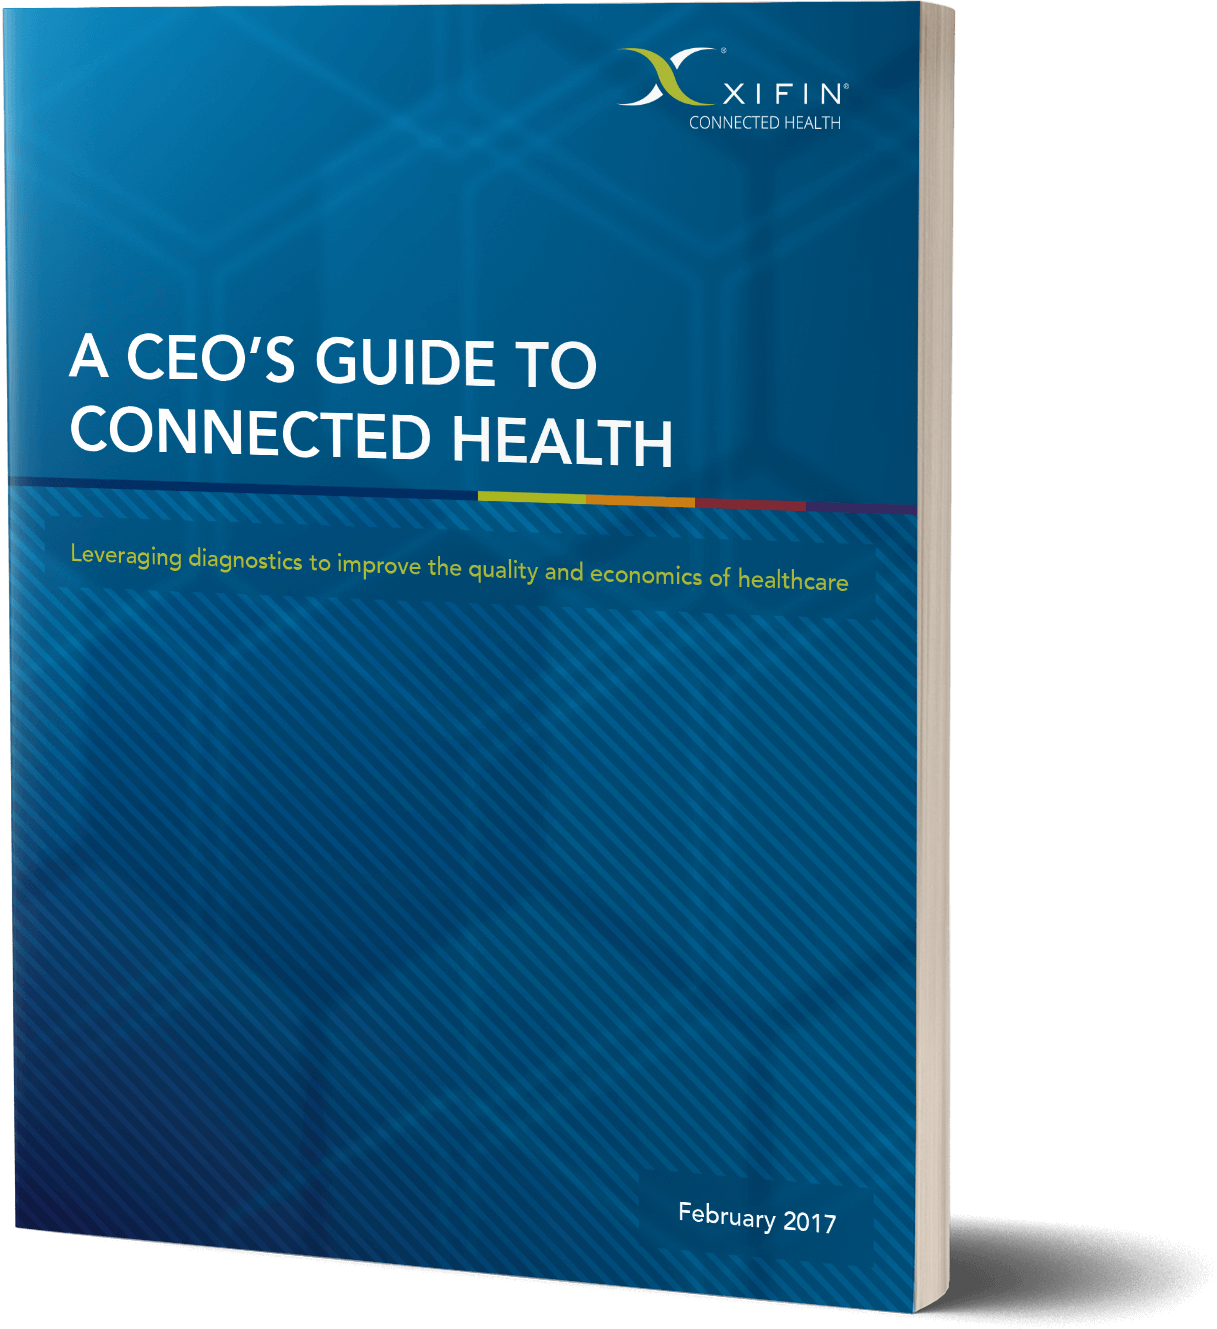 A CEO's Guide to Connected Health